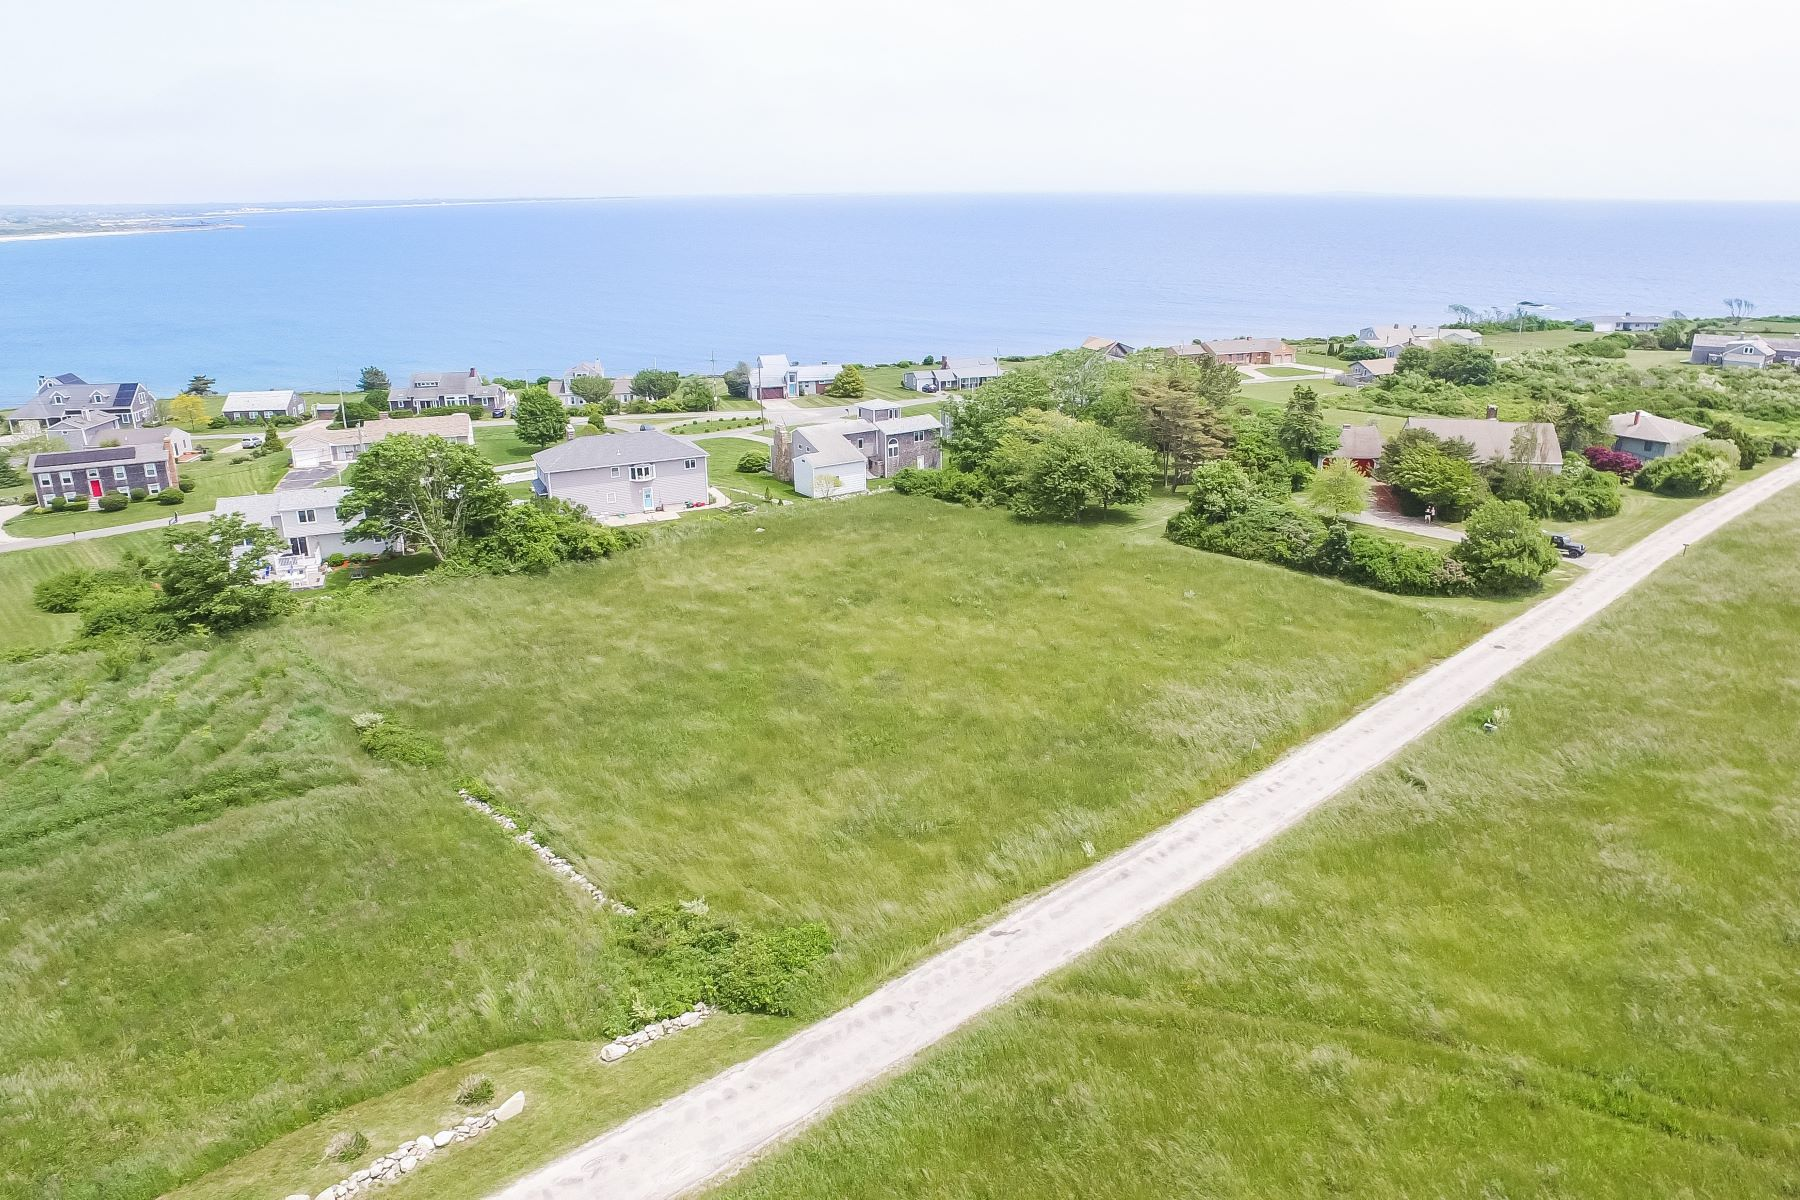 Land for Sale at 64 Butts Rock Road, Little Compton, RI 64 Butts Rock Road Little Compton, Rhode Island 02837 United States